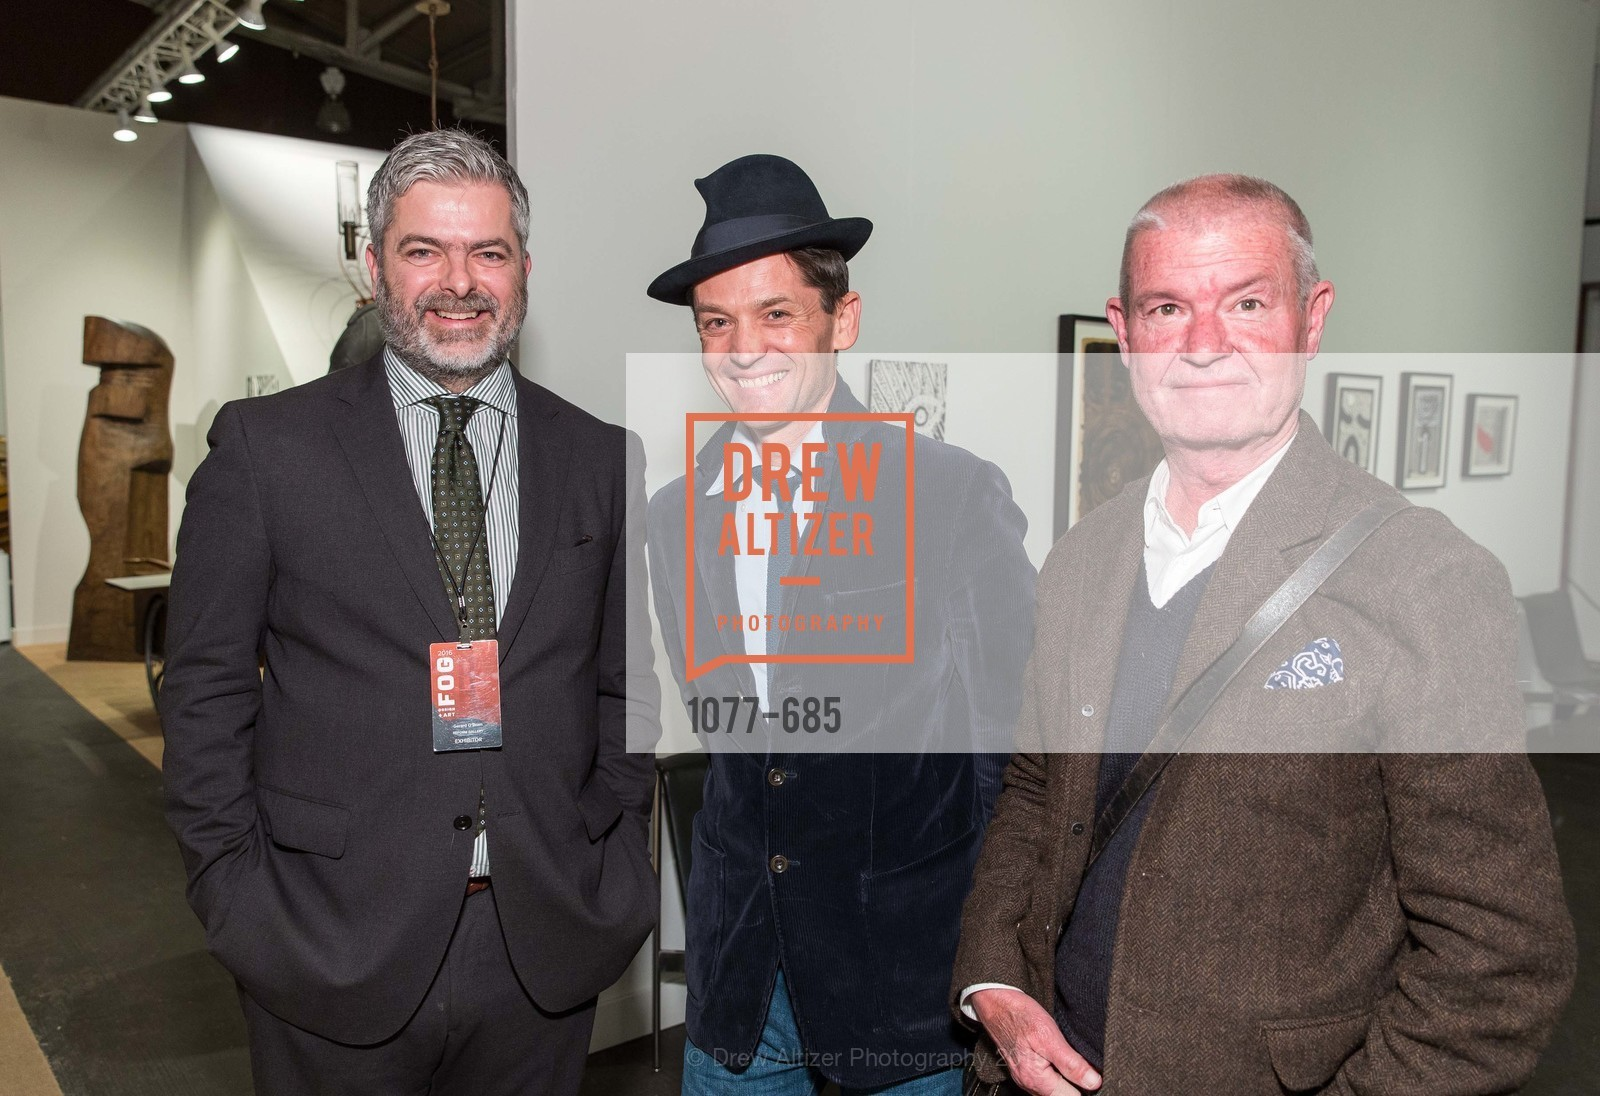 Gerard O'Brien, Daniel de la Falaise, Fletcher, Photo #1077-685